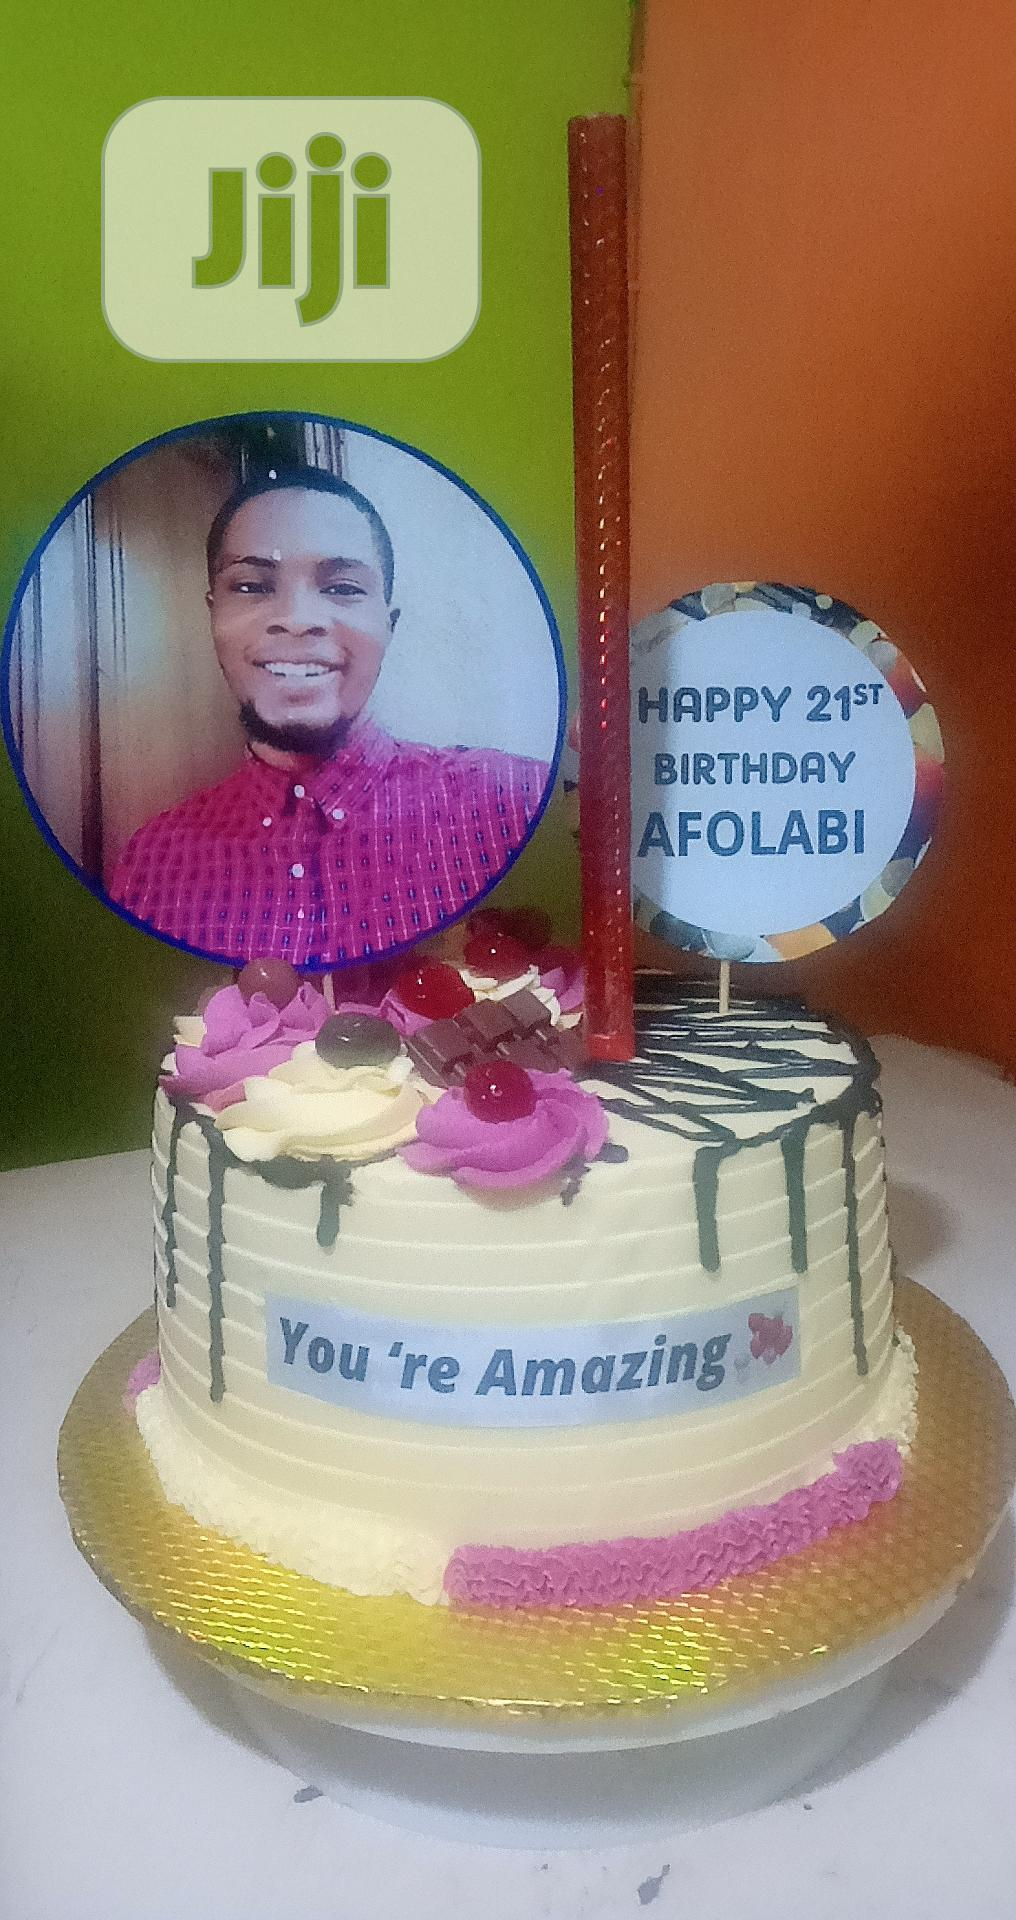 Archive: Birthday Cake by at Oluwaseunevents